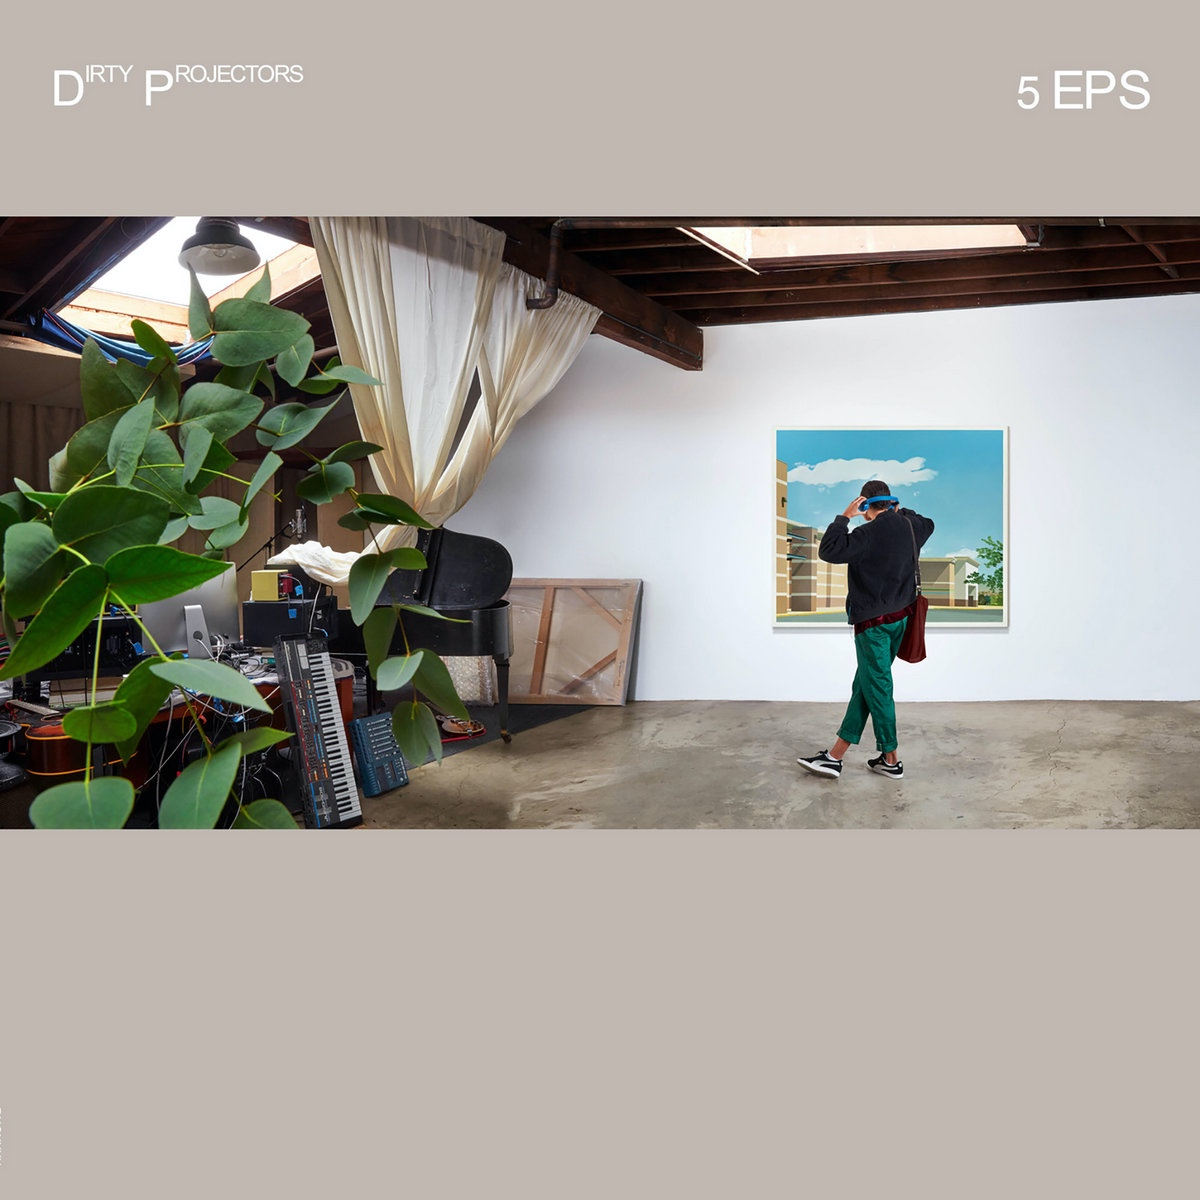 Dirty Projectors Rekindle Their Spark with '5EPs'